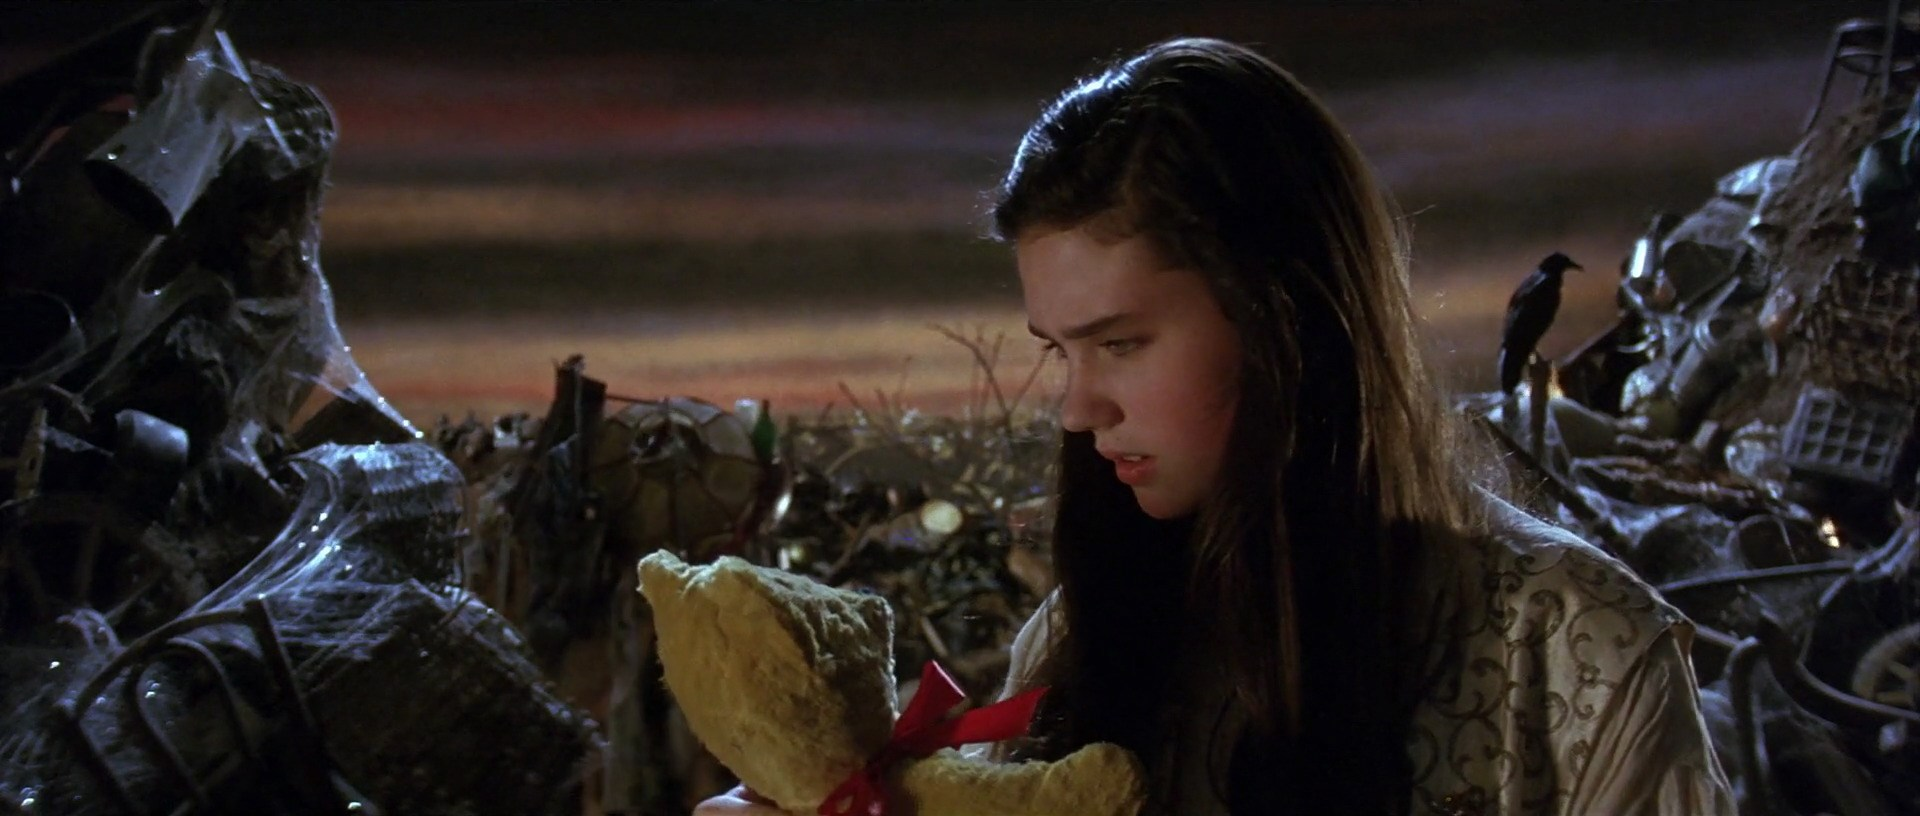 labyrinth-movie-screencaps.com-8178.jpg